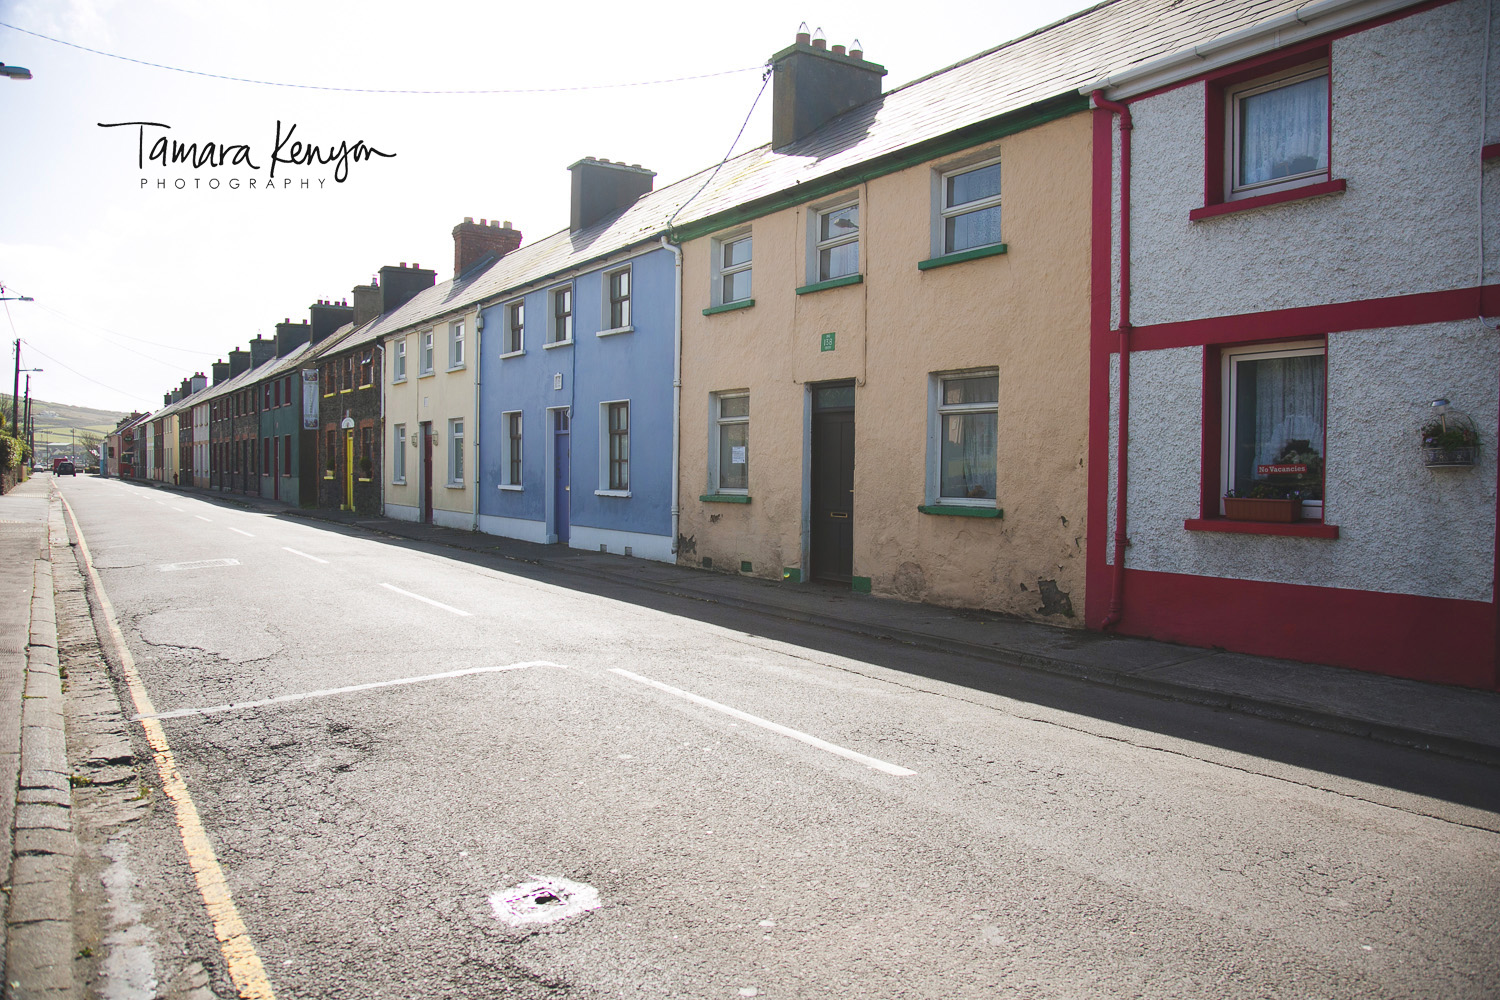 Dingle_Ireland